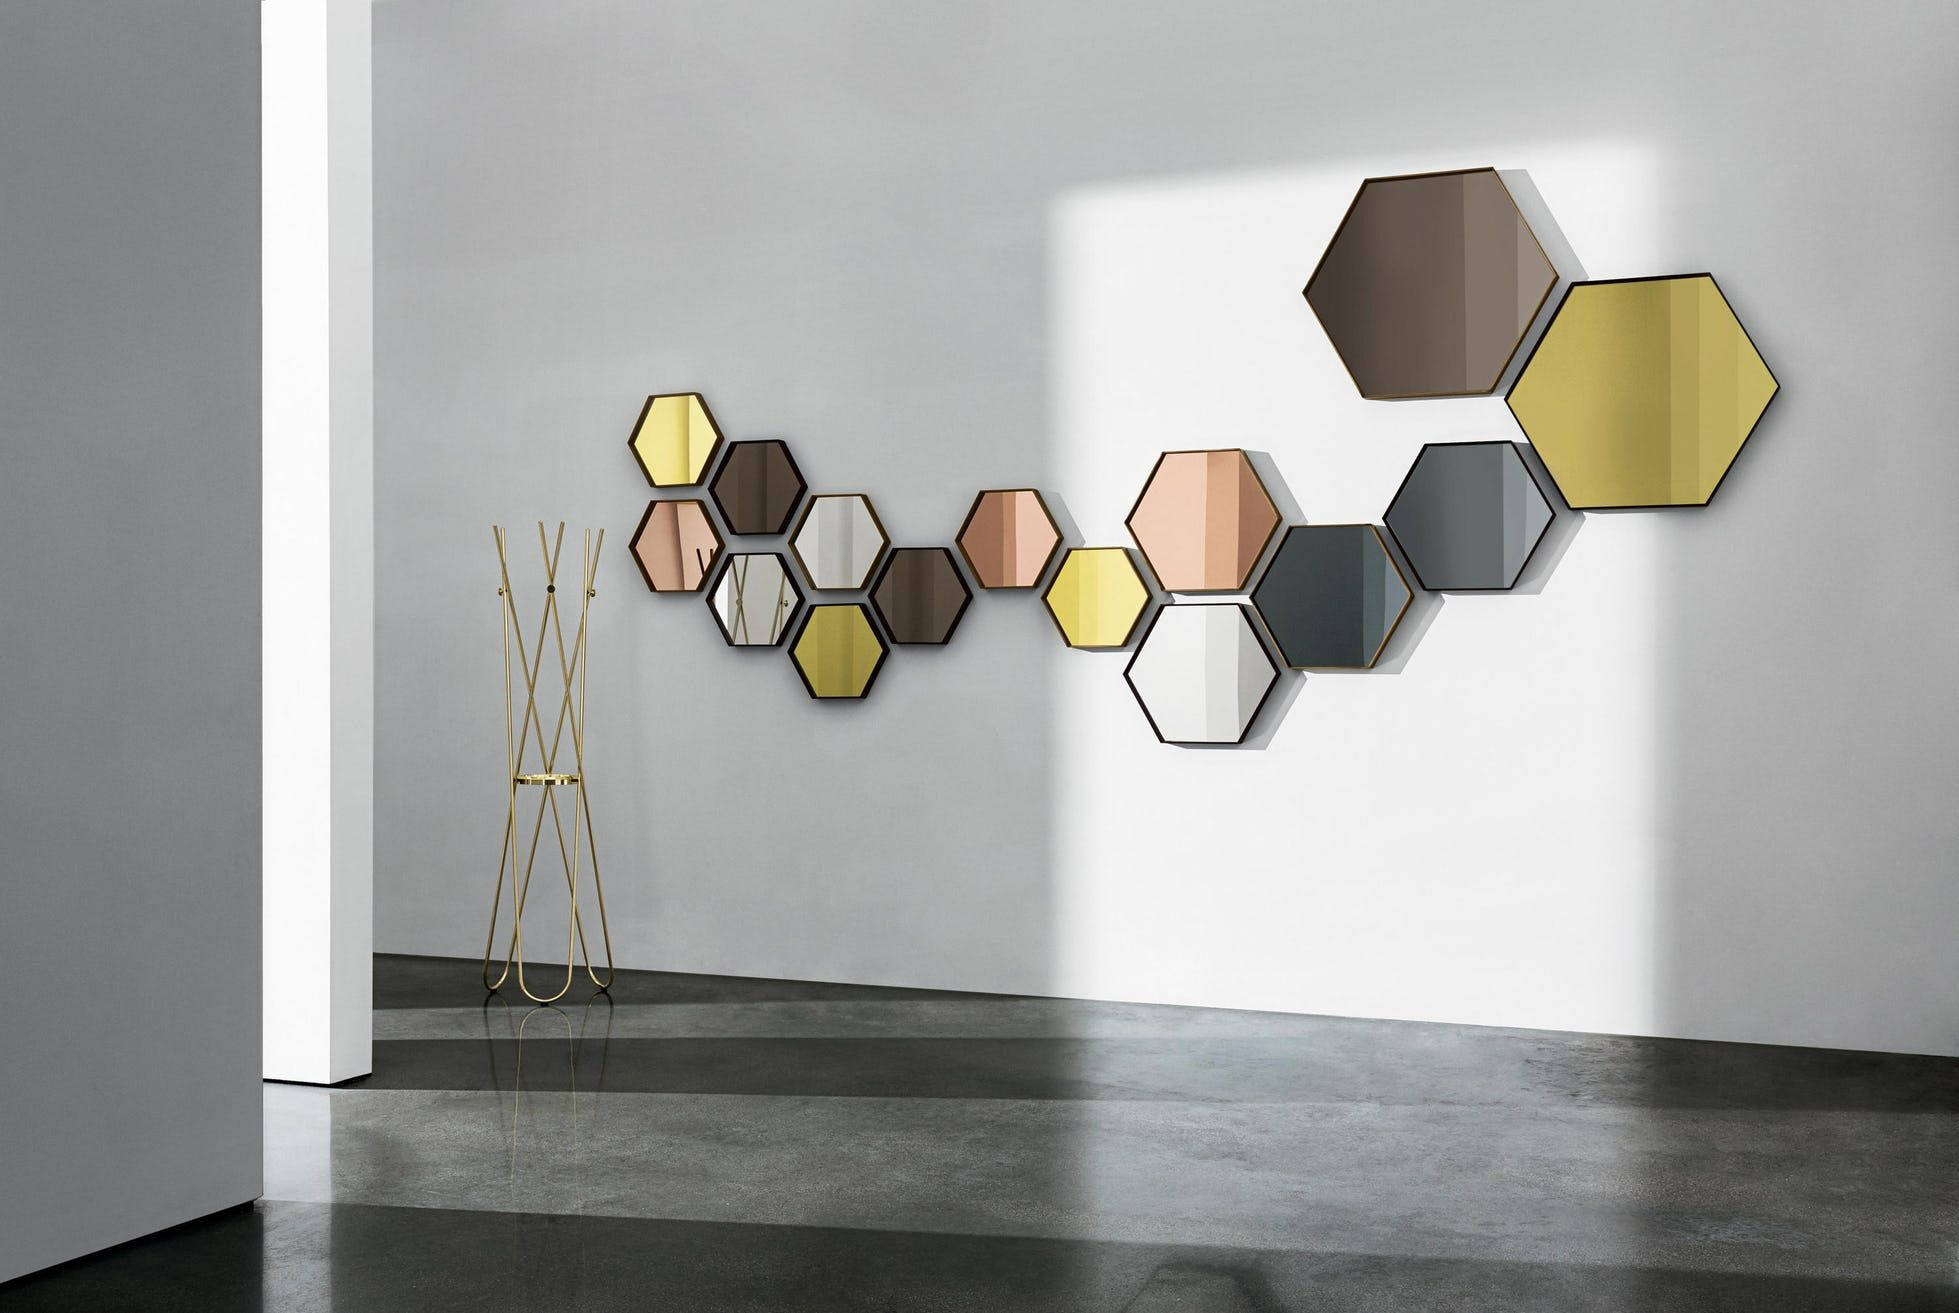 Hexagonal Visual Mirror by SOVET, now available at Haute